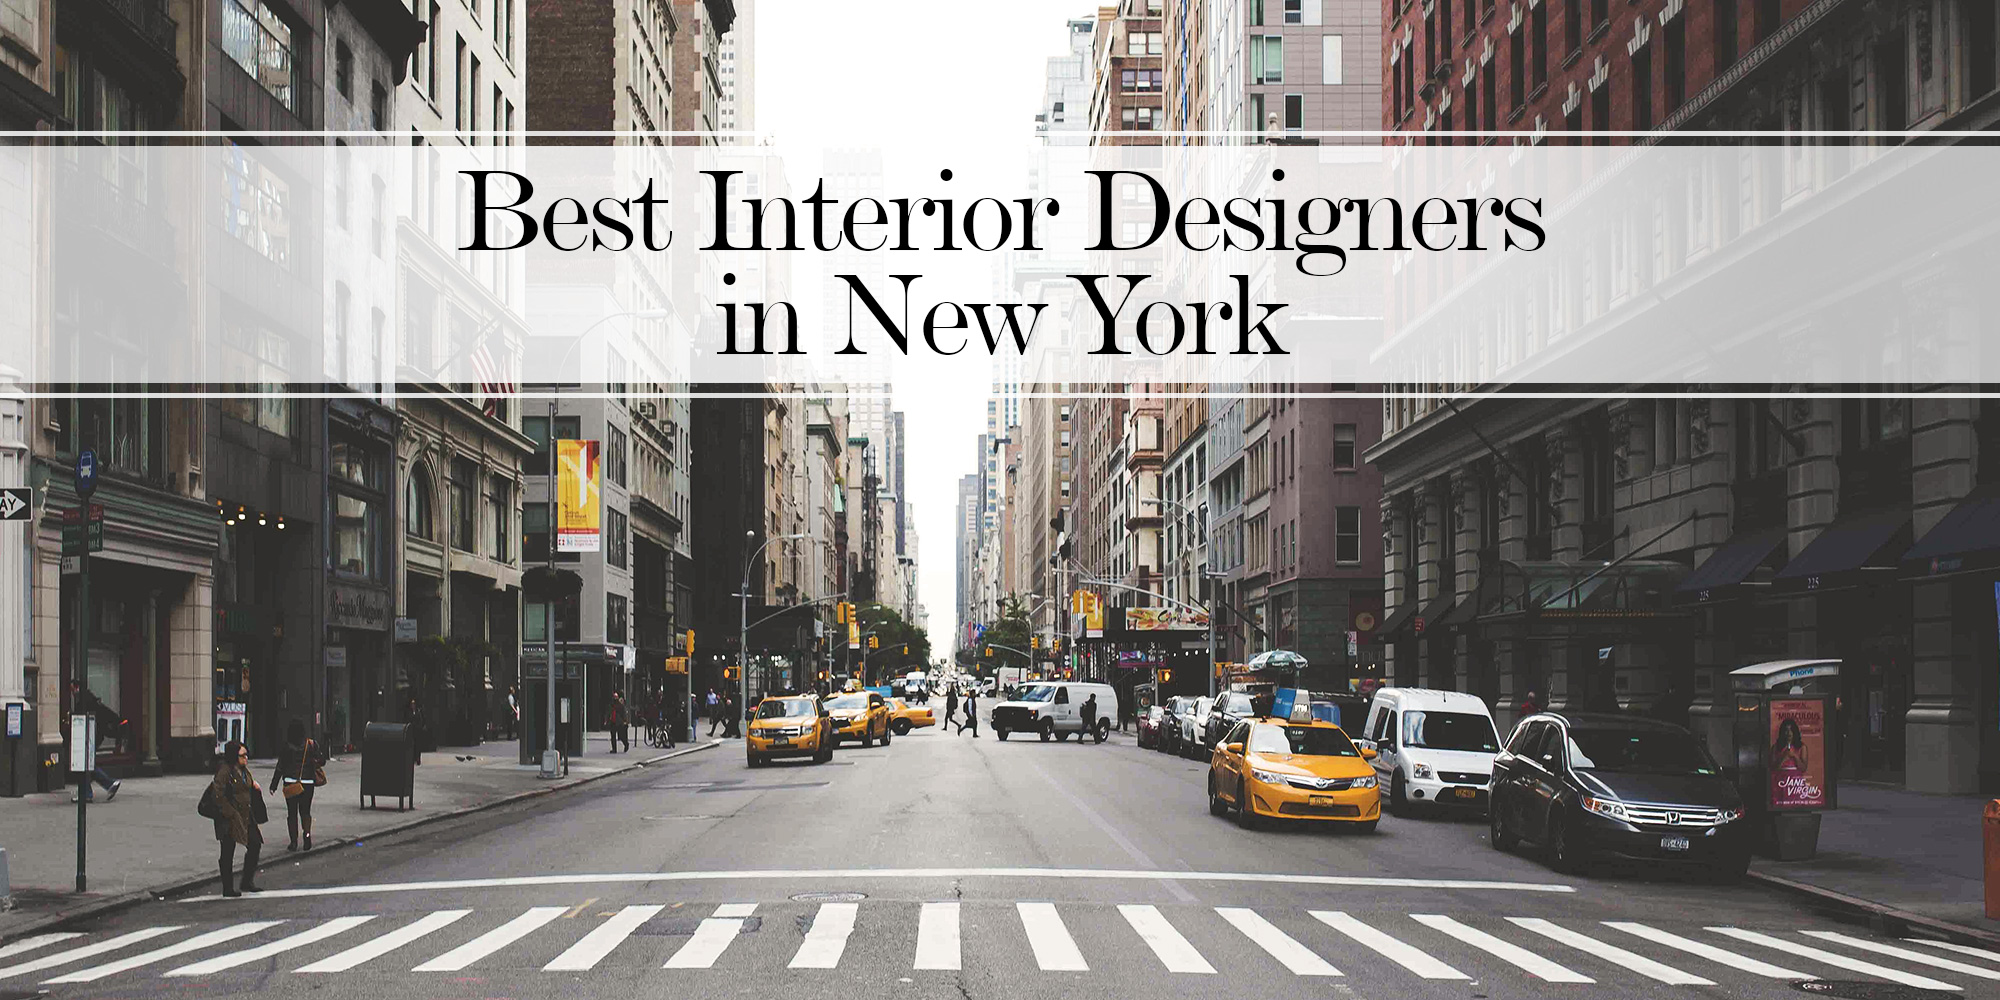 20 Best Interior Designers In New York